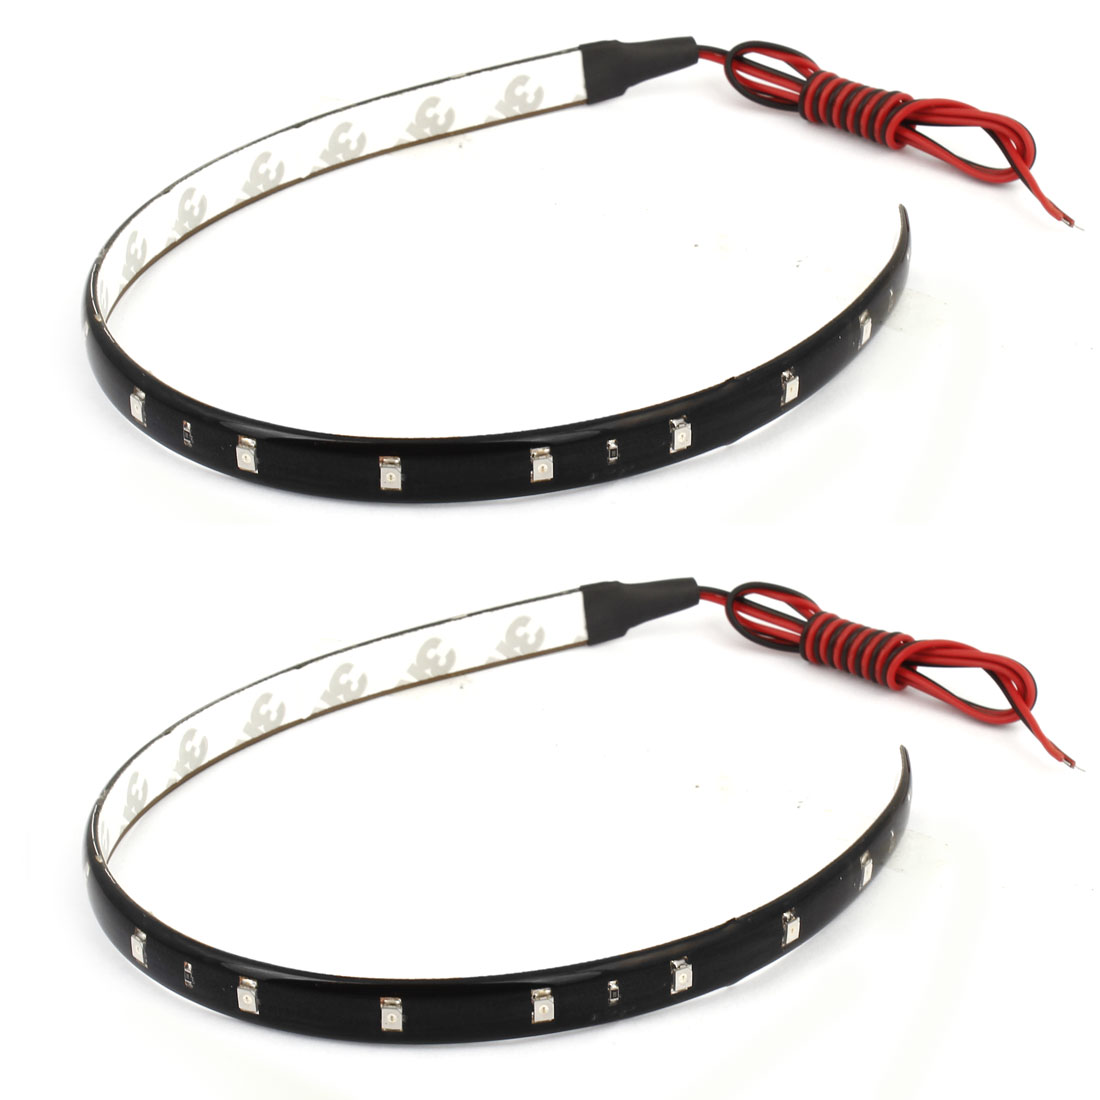 2 Pcs Car 15 Red LED SMD Flexible Waterproof Lamp Light Strip Sticker 30cm internal